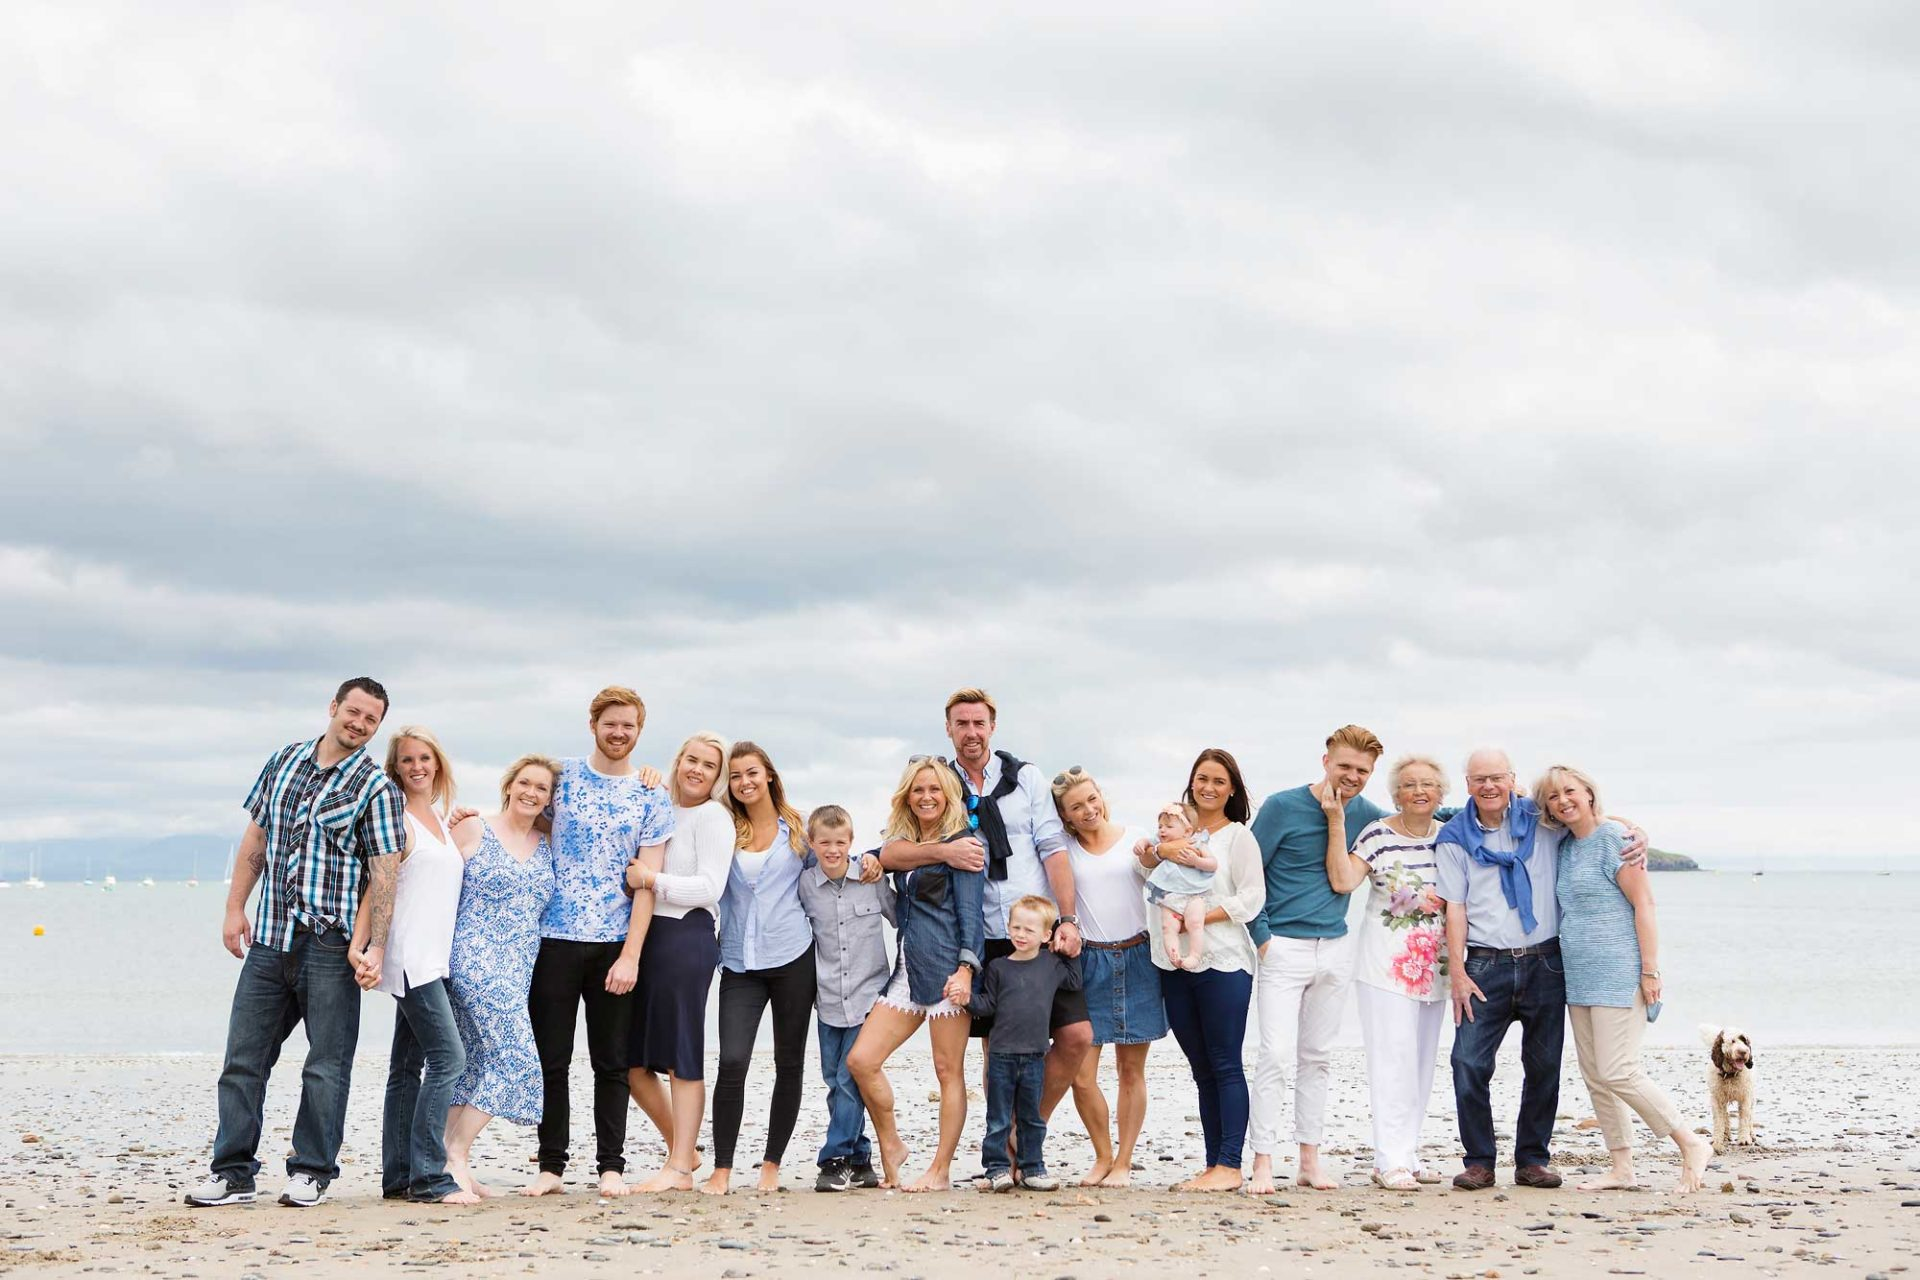 Family Photography – Your Beach Palette